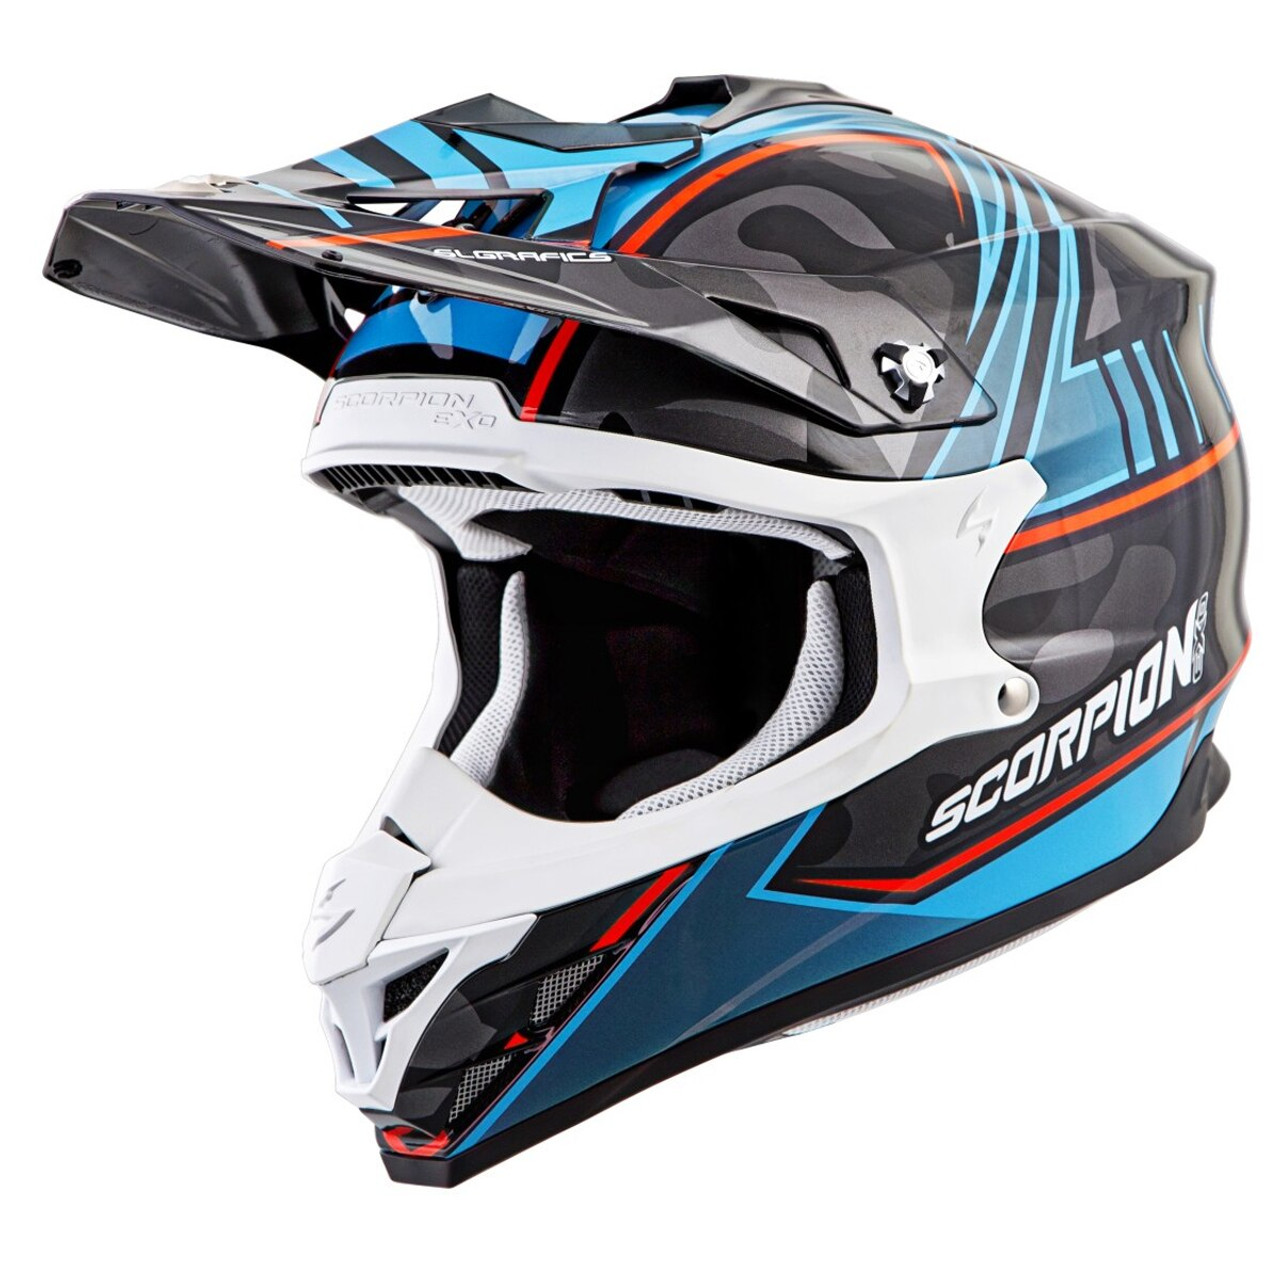 Neon Blue Ascend//One Size Scorpion Peak Visor Vx-R70 Motorcycle Helmet Accessories